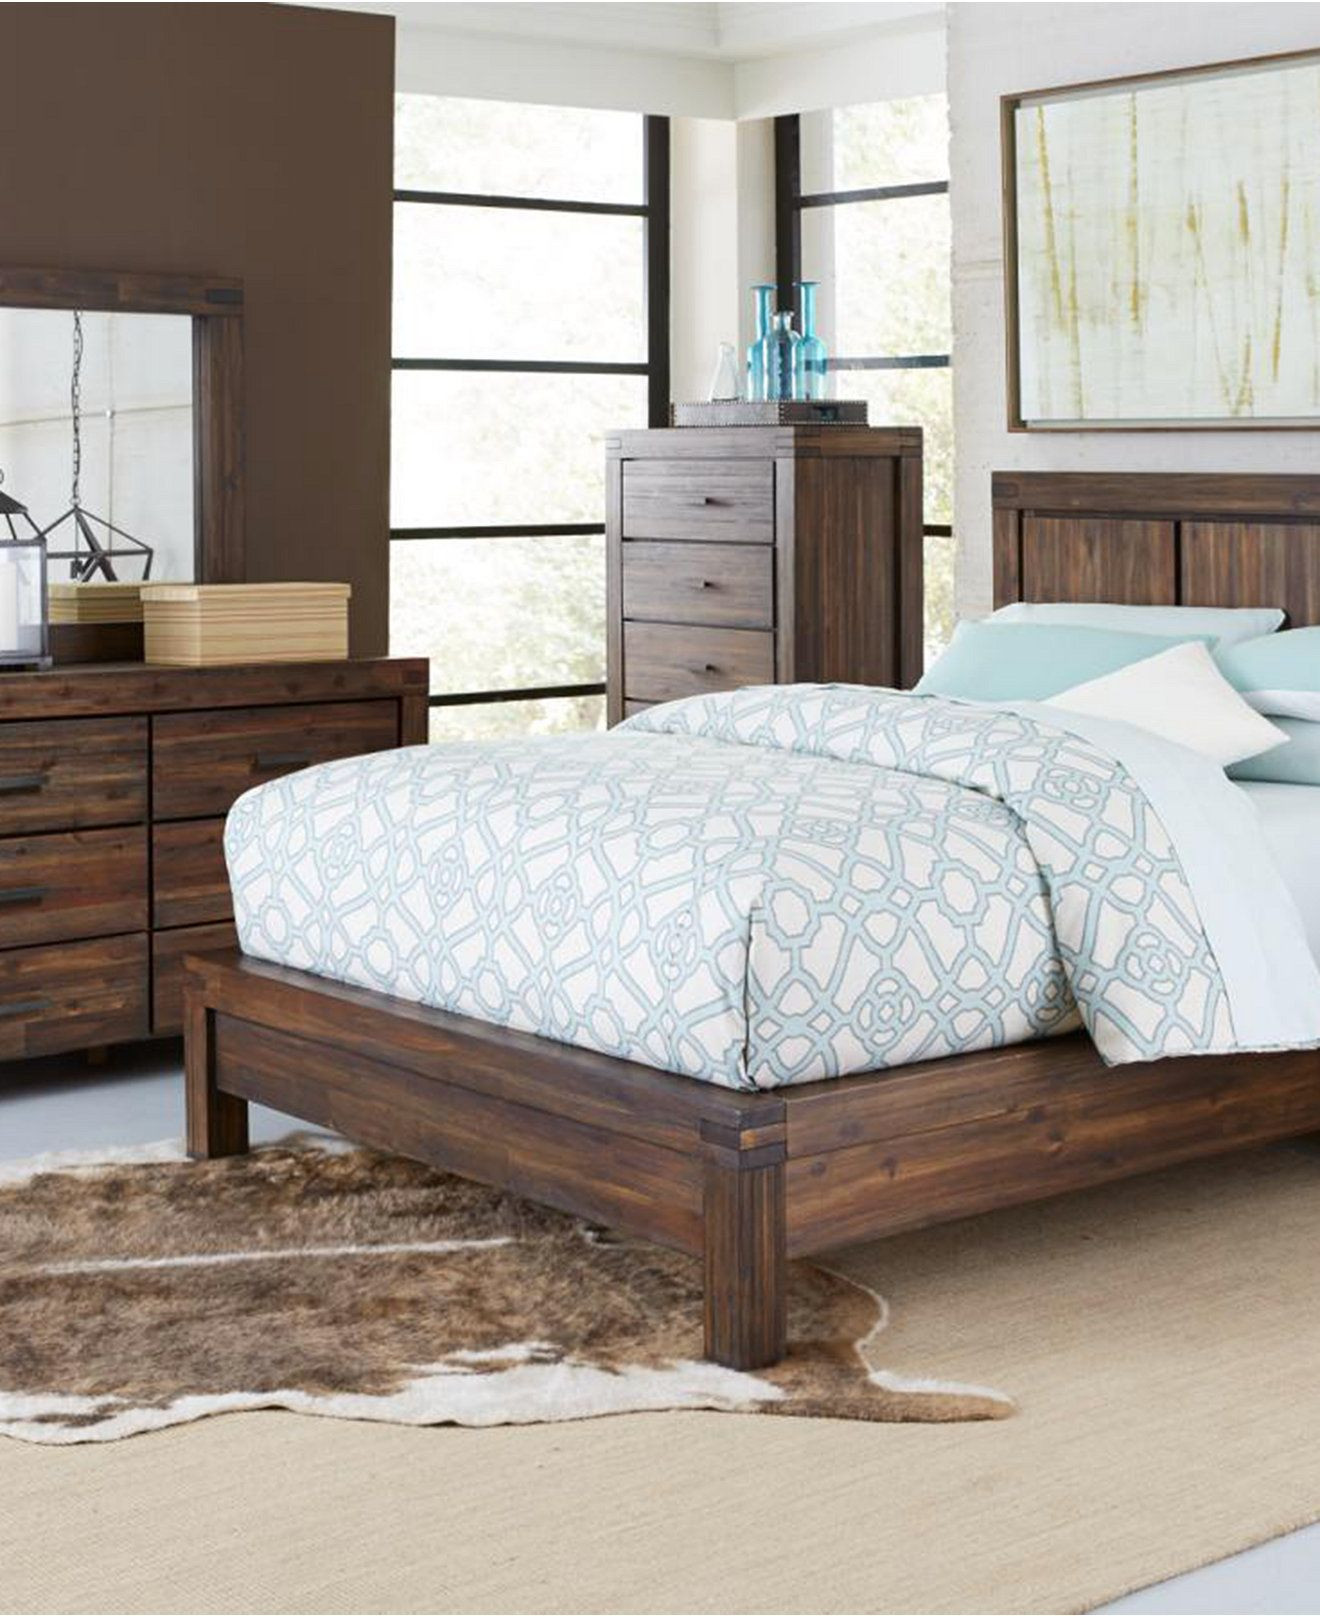 Best ideas about Macys Bedroom Sets . Save or Pin Avondale Platform Bedroom Furniture Collection Now.